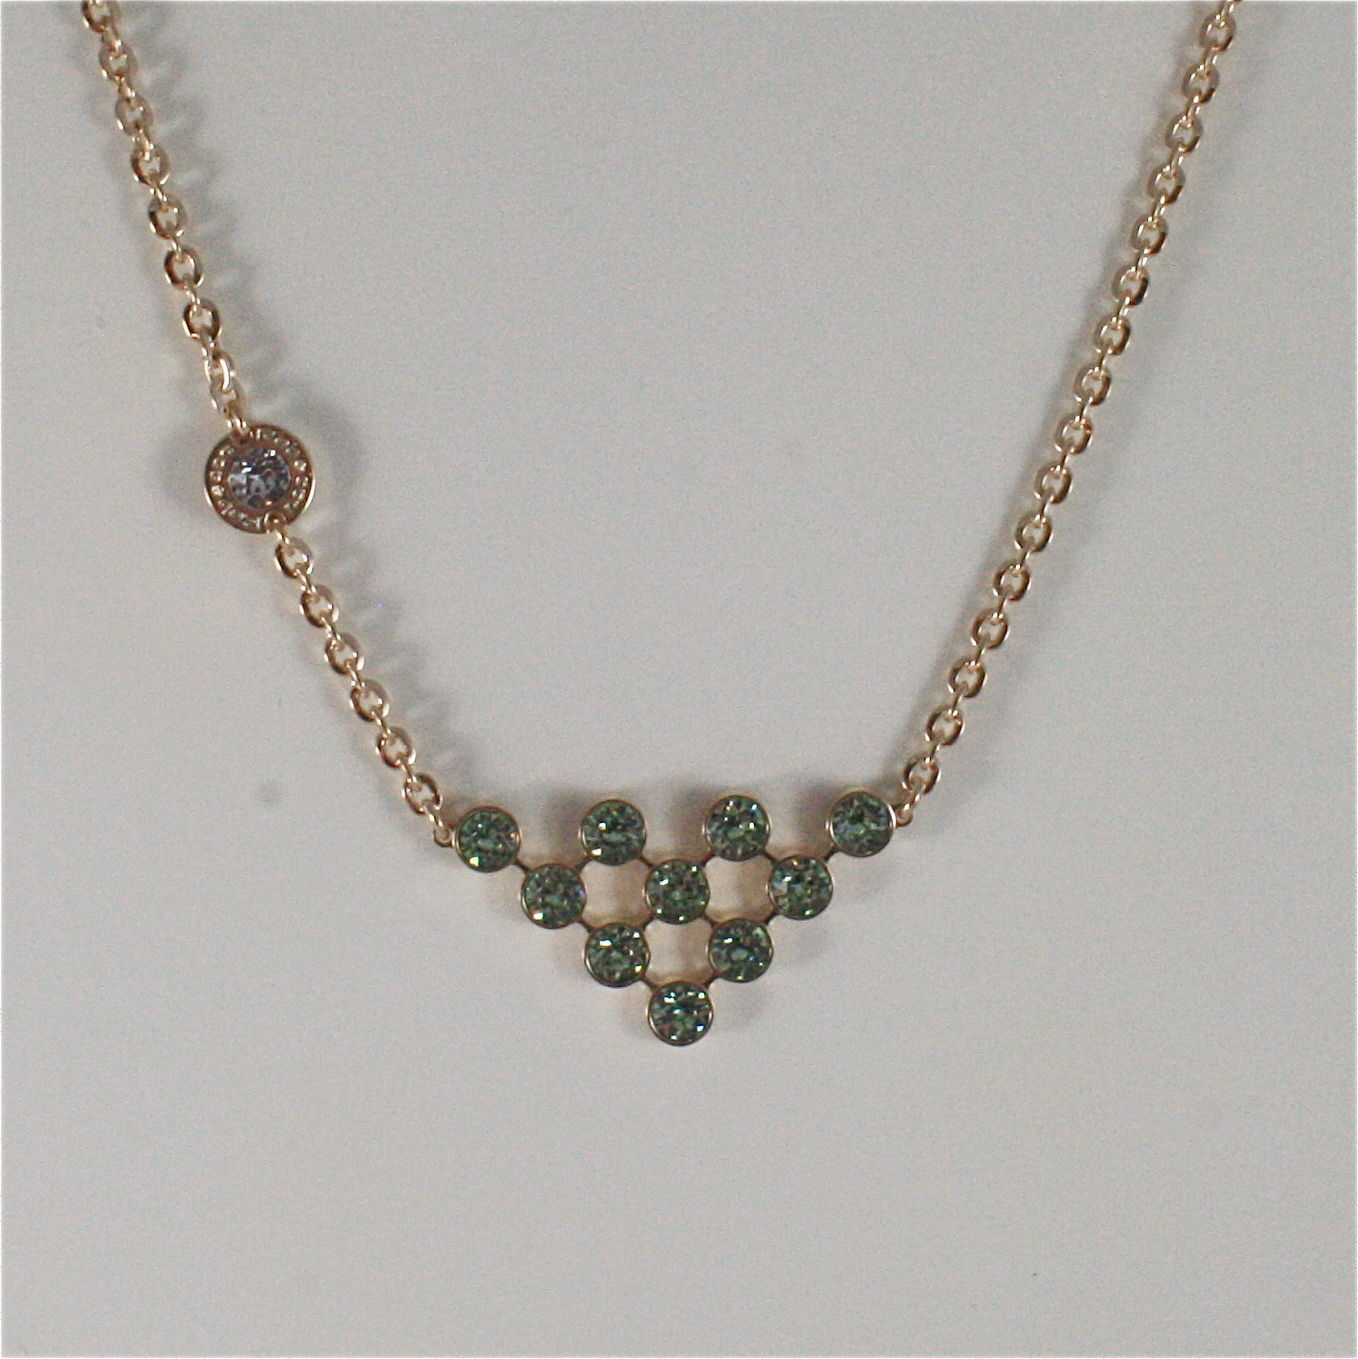 YELLOW GOLD PLATED BRONZE REBECCA CLUSTER NECKLACE BPBKOE05 MADE IN ITALY 18.90